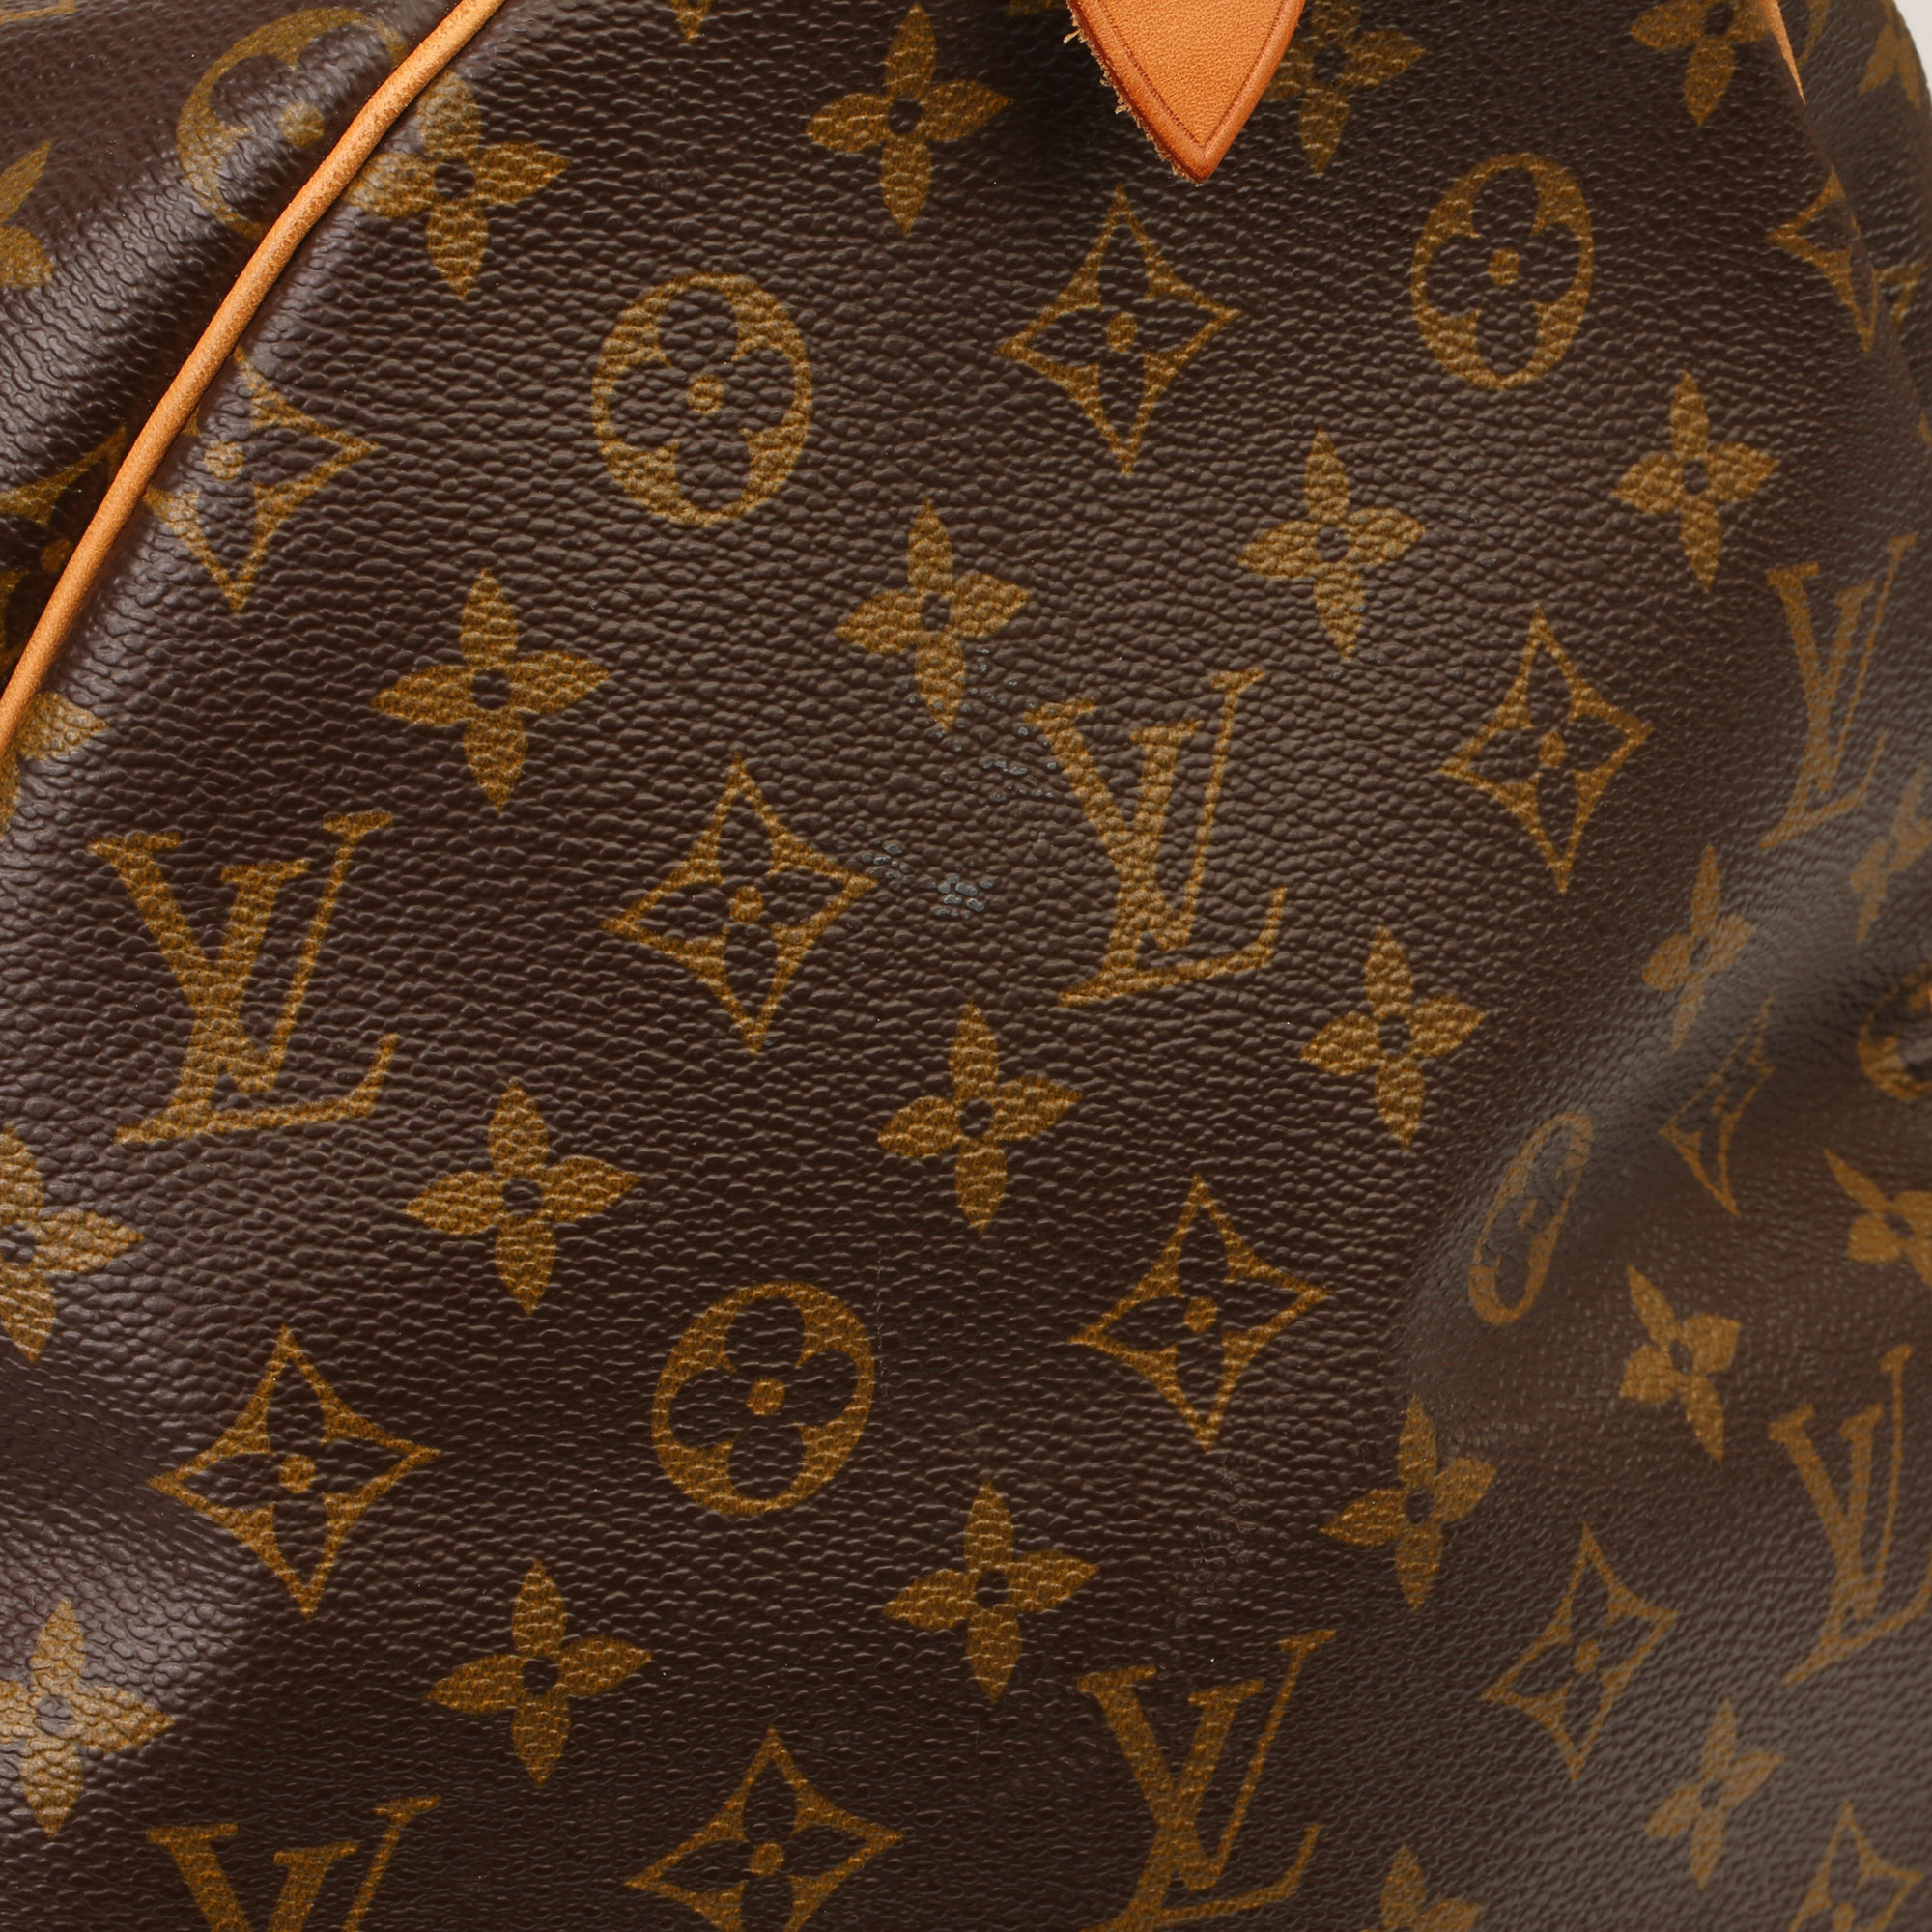 Louis Vuitton Brown Monogram Coated Canvas & Vachetta Leather Vintage Keepall 55 - Image 4 of 14